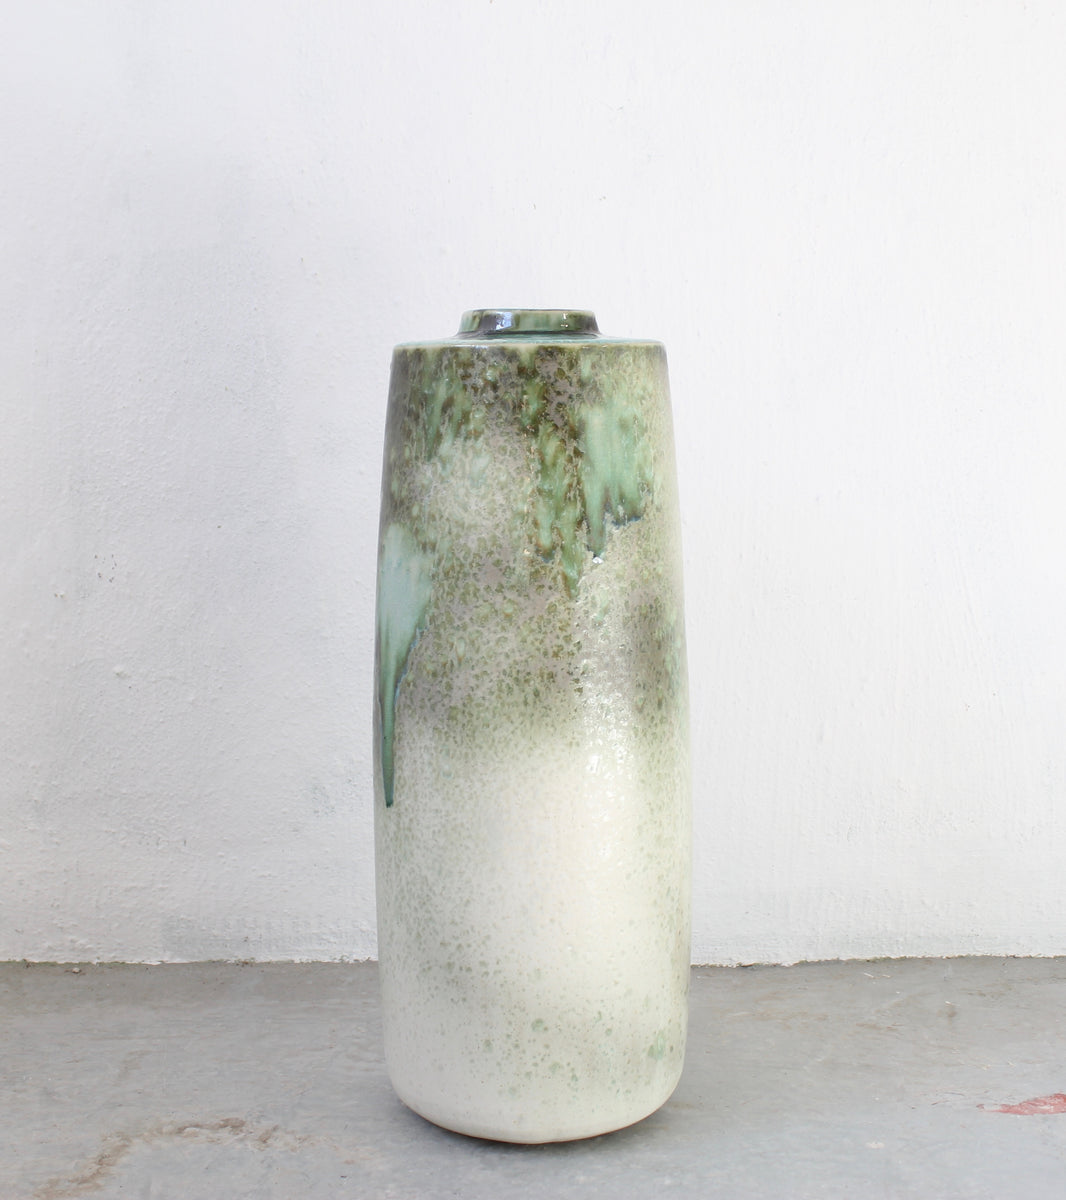 Giant Snub Nose Bottle Floor Vase <br> Green Glaze